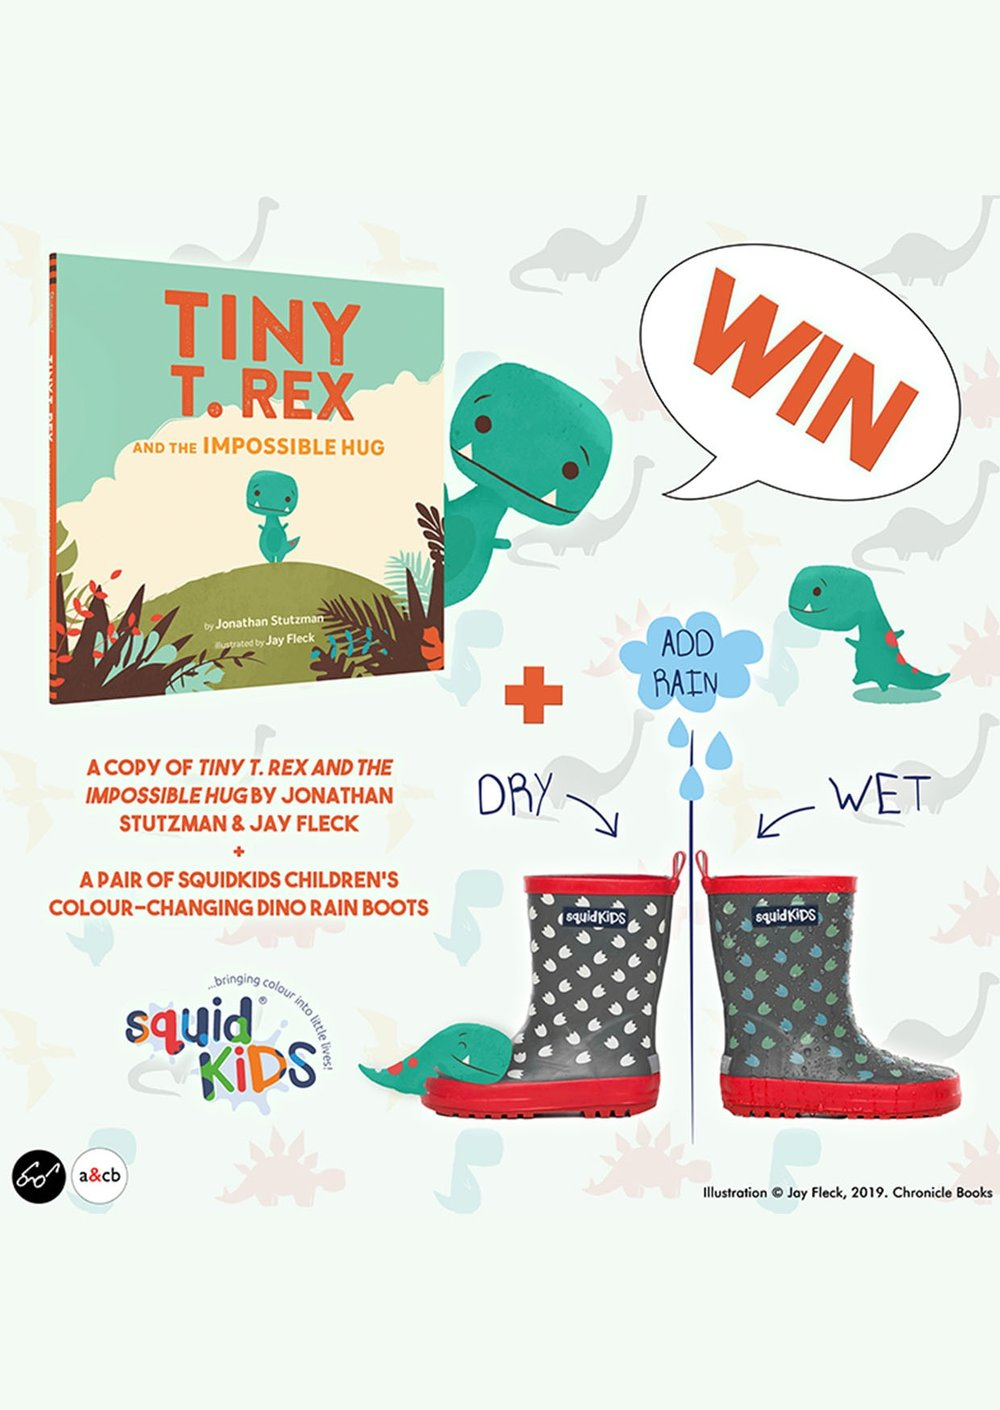 March 2019 Tiny T. Rex Book Launch